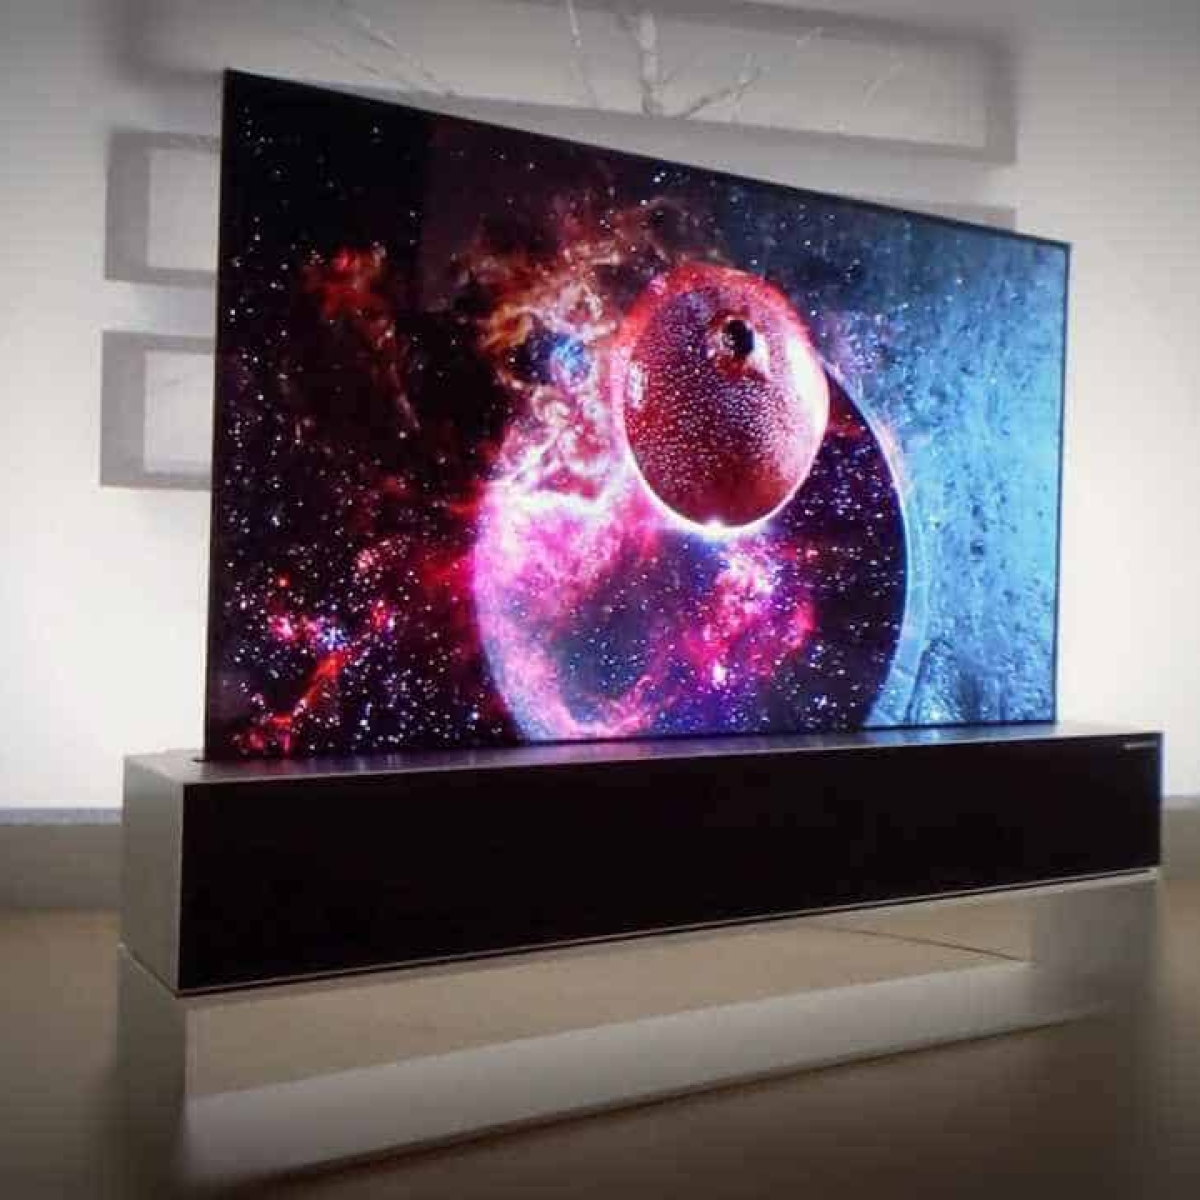 LG's rollable TV could go on sale as early as H1 2020